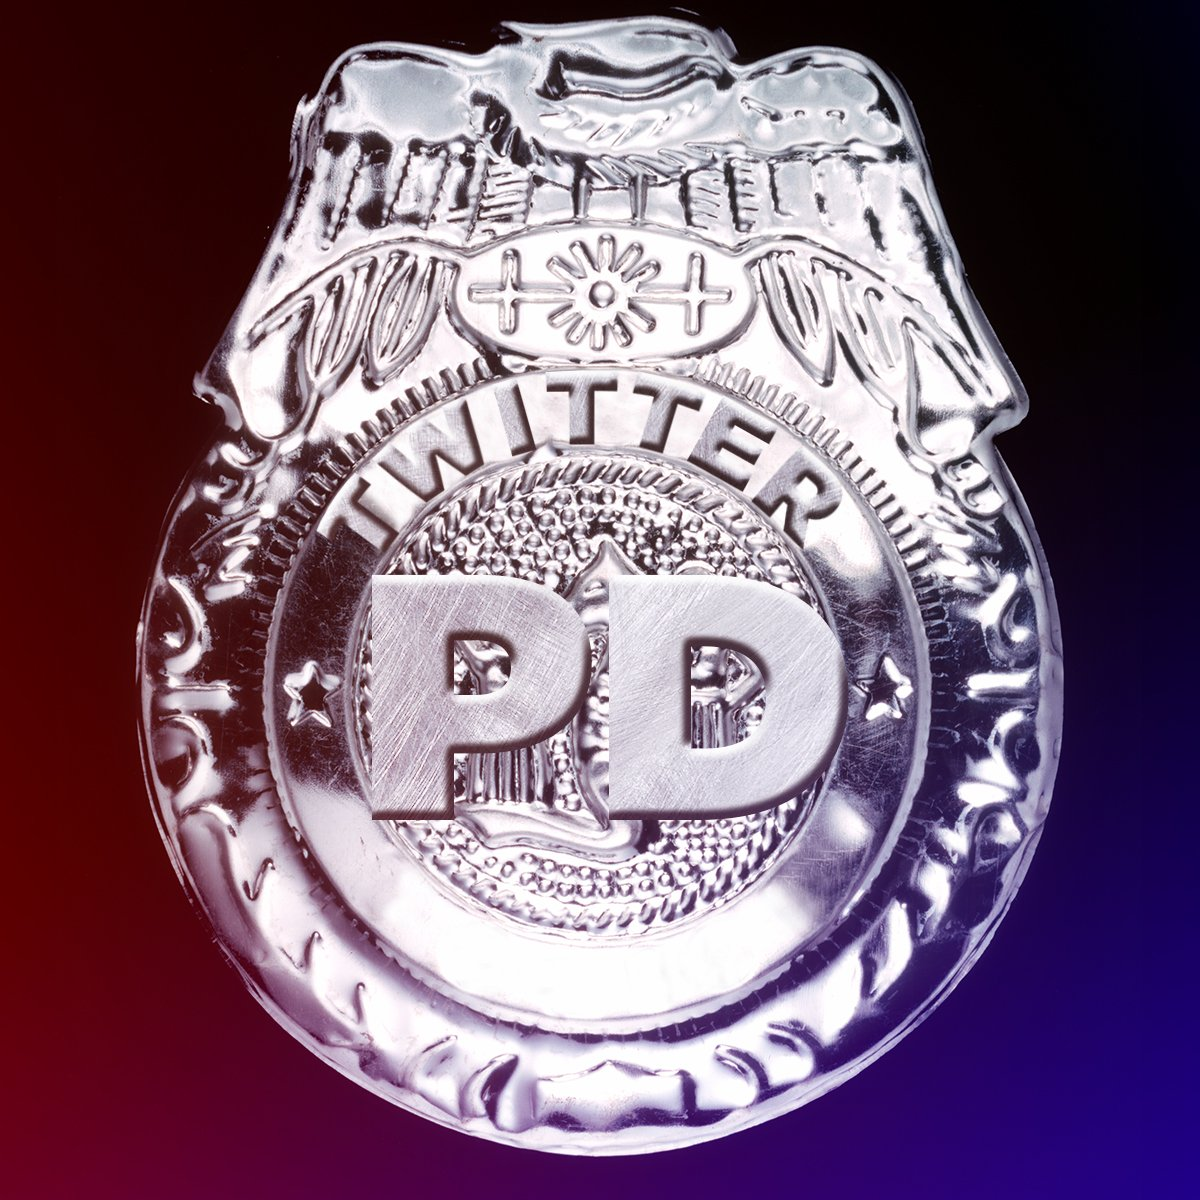 #LivePD is in full effect! #TwitterPD, show your badge and RT if you'r...